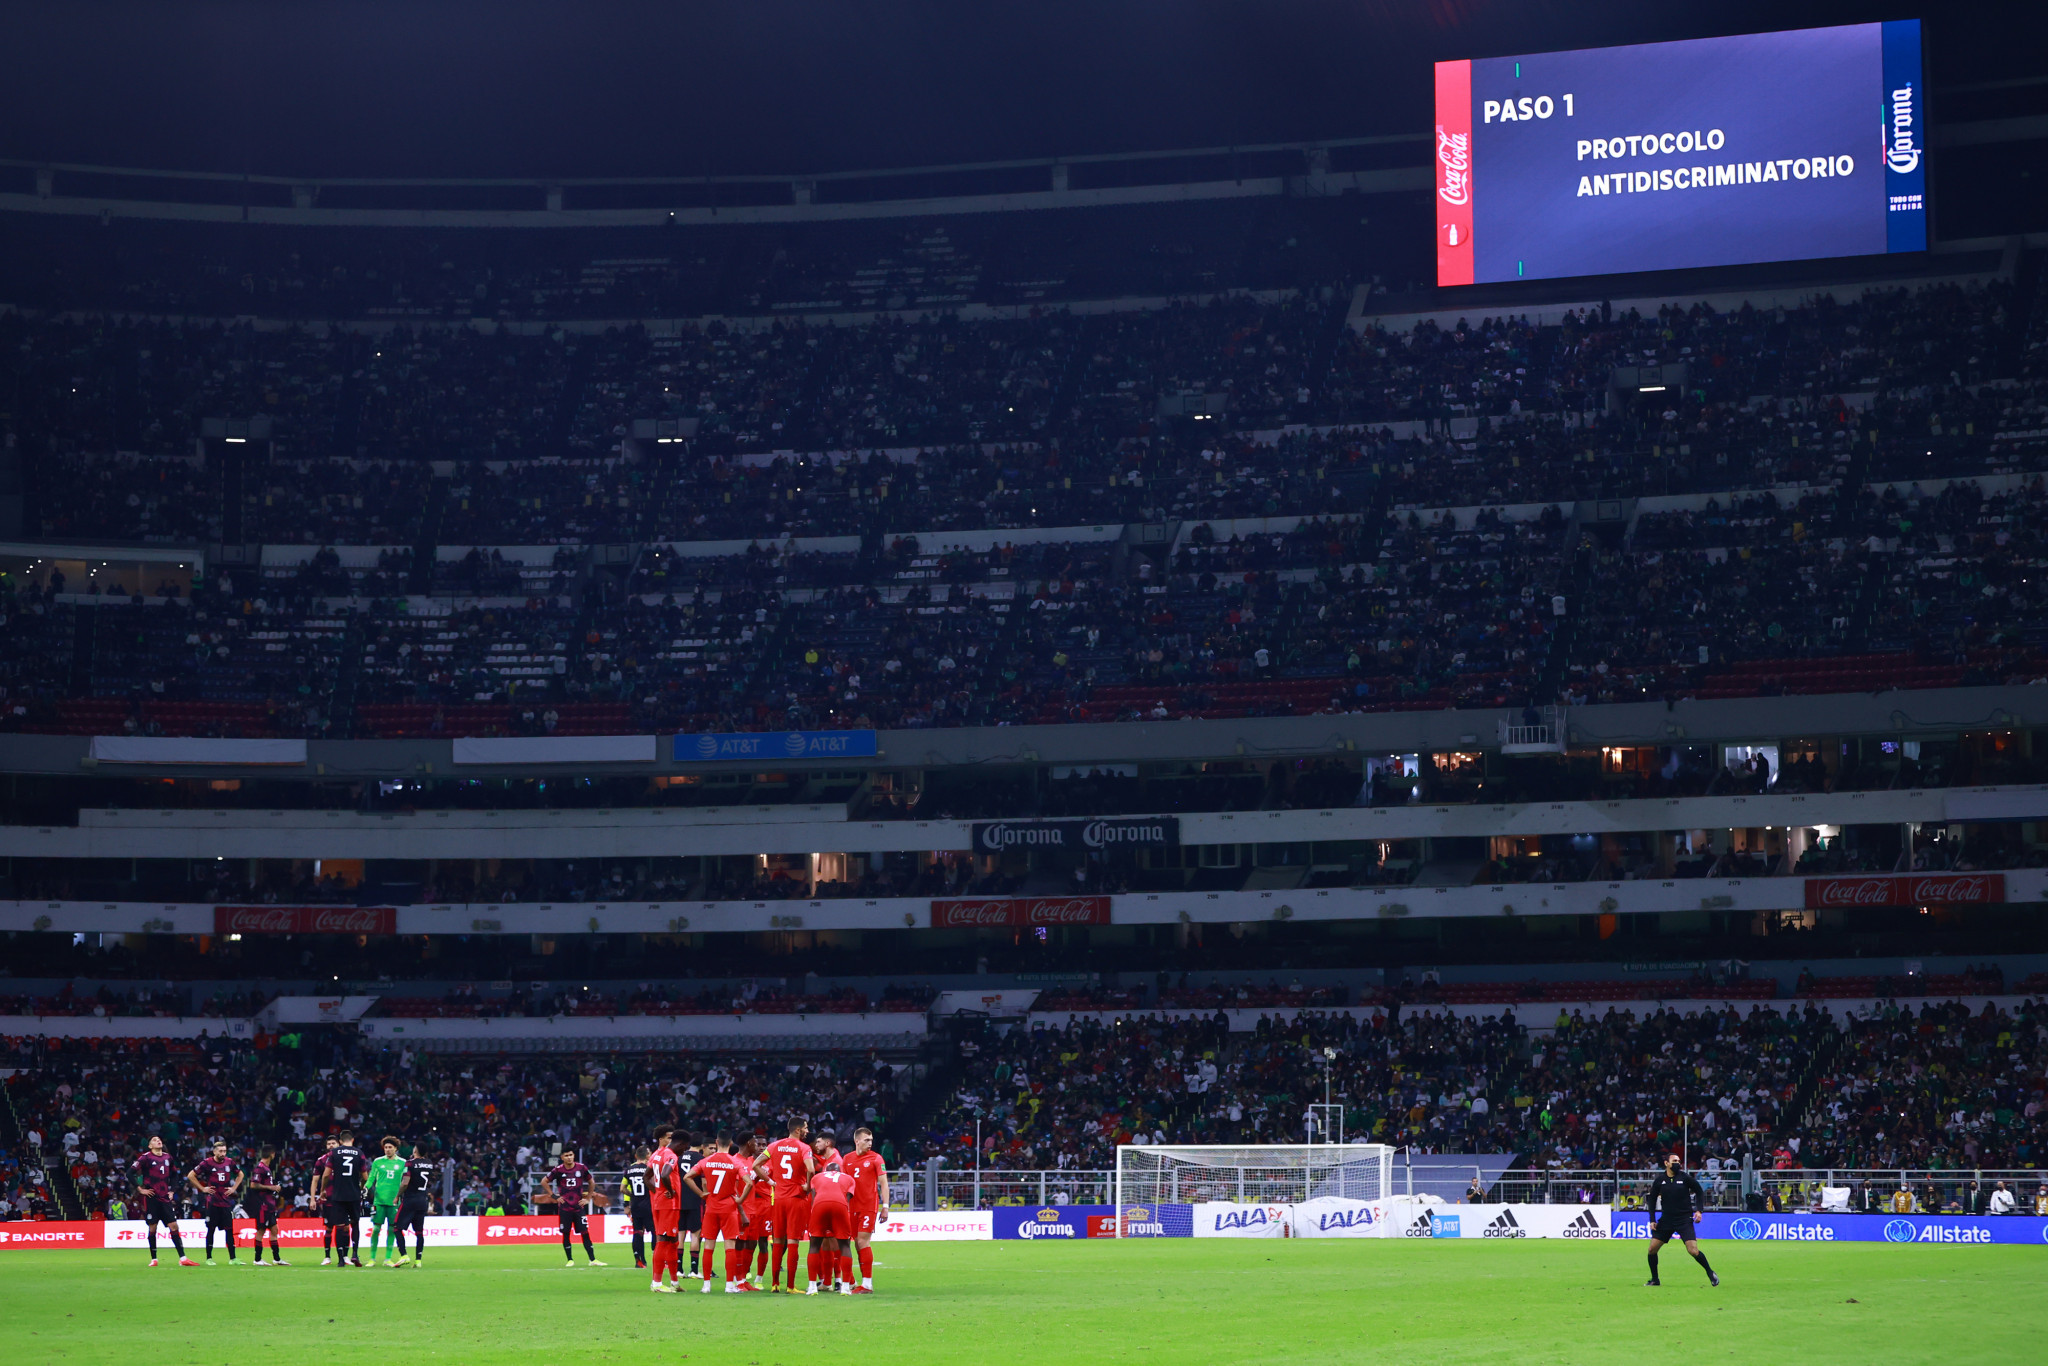 Mexico's FIFA World Cup qualifier against Canada at Azteca Stadium paused amid reports of further homophobic chants